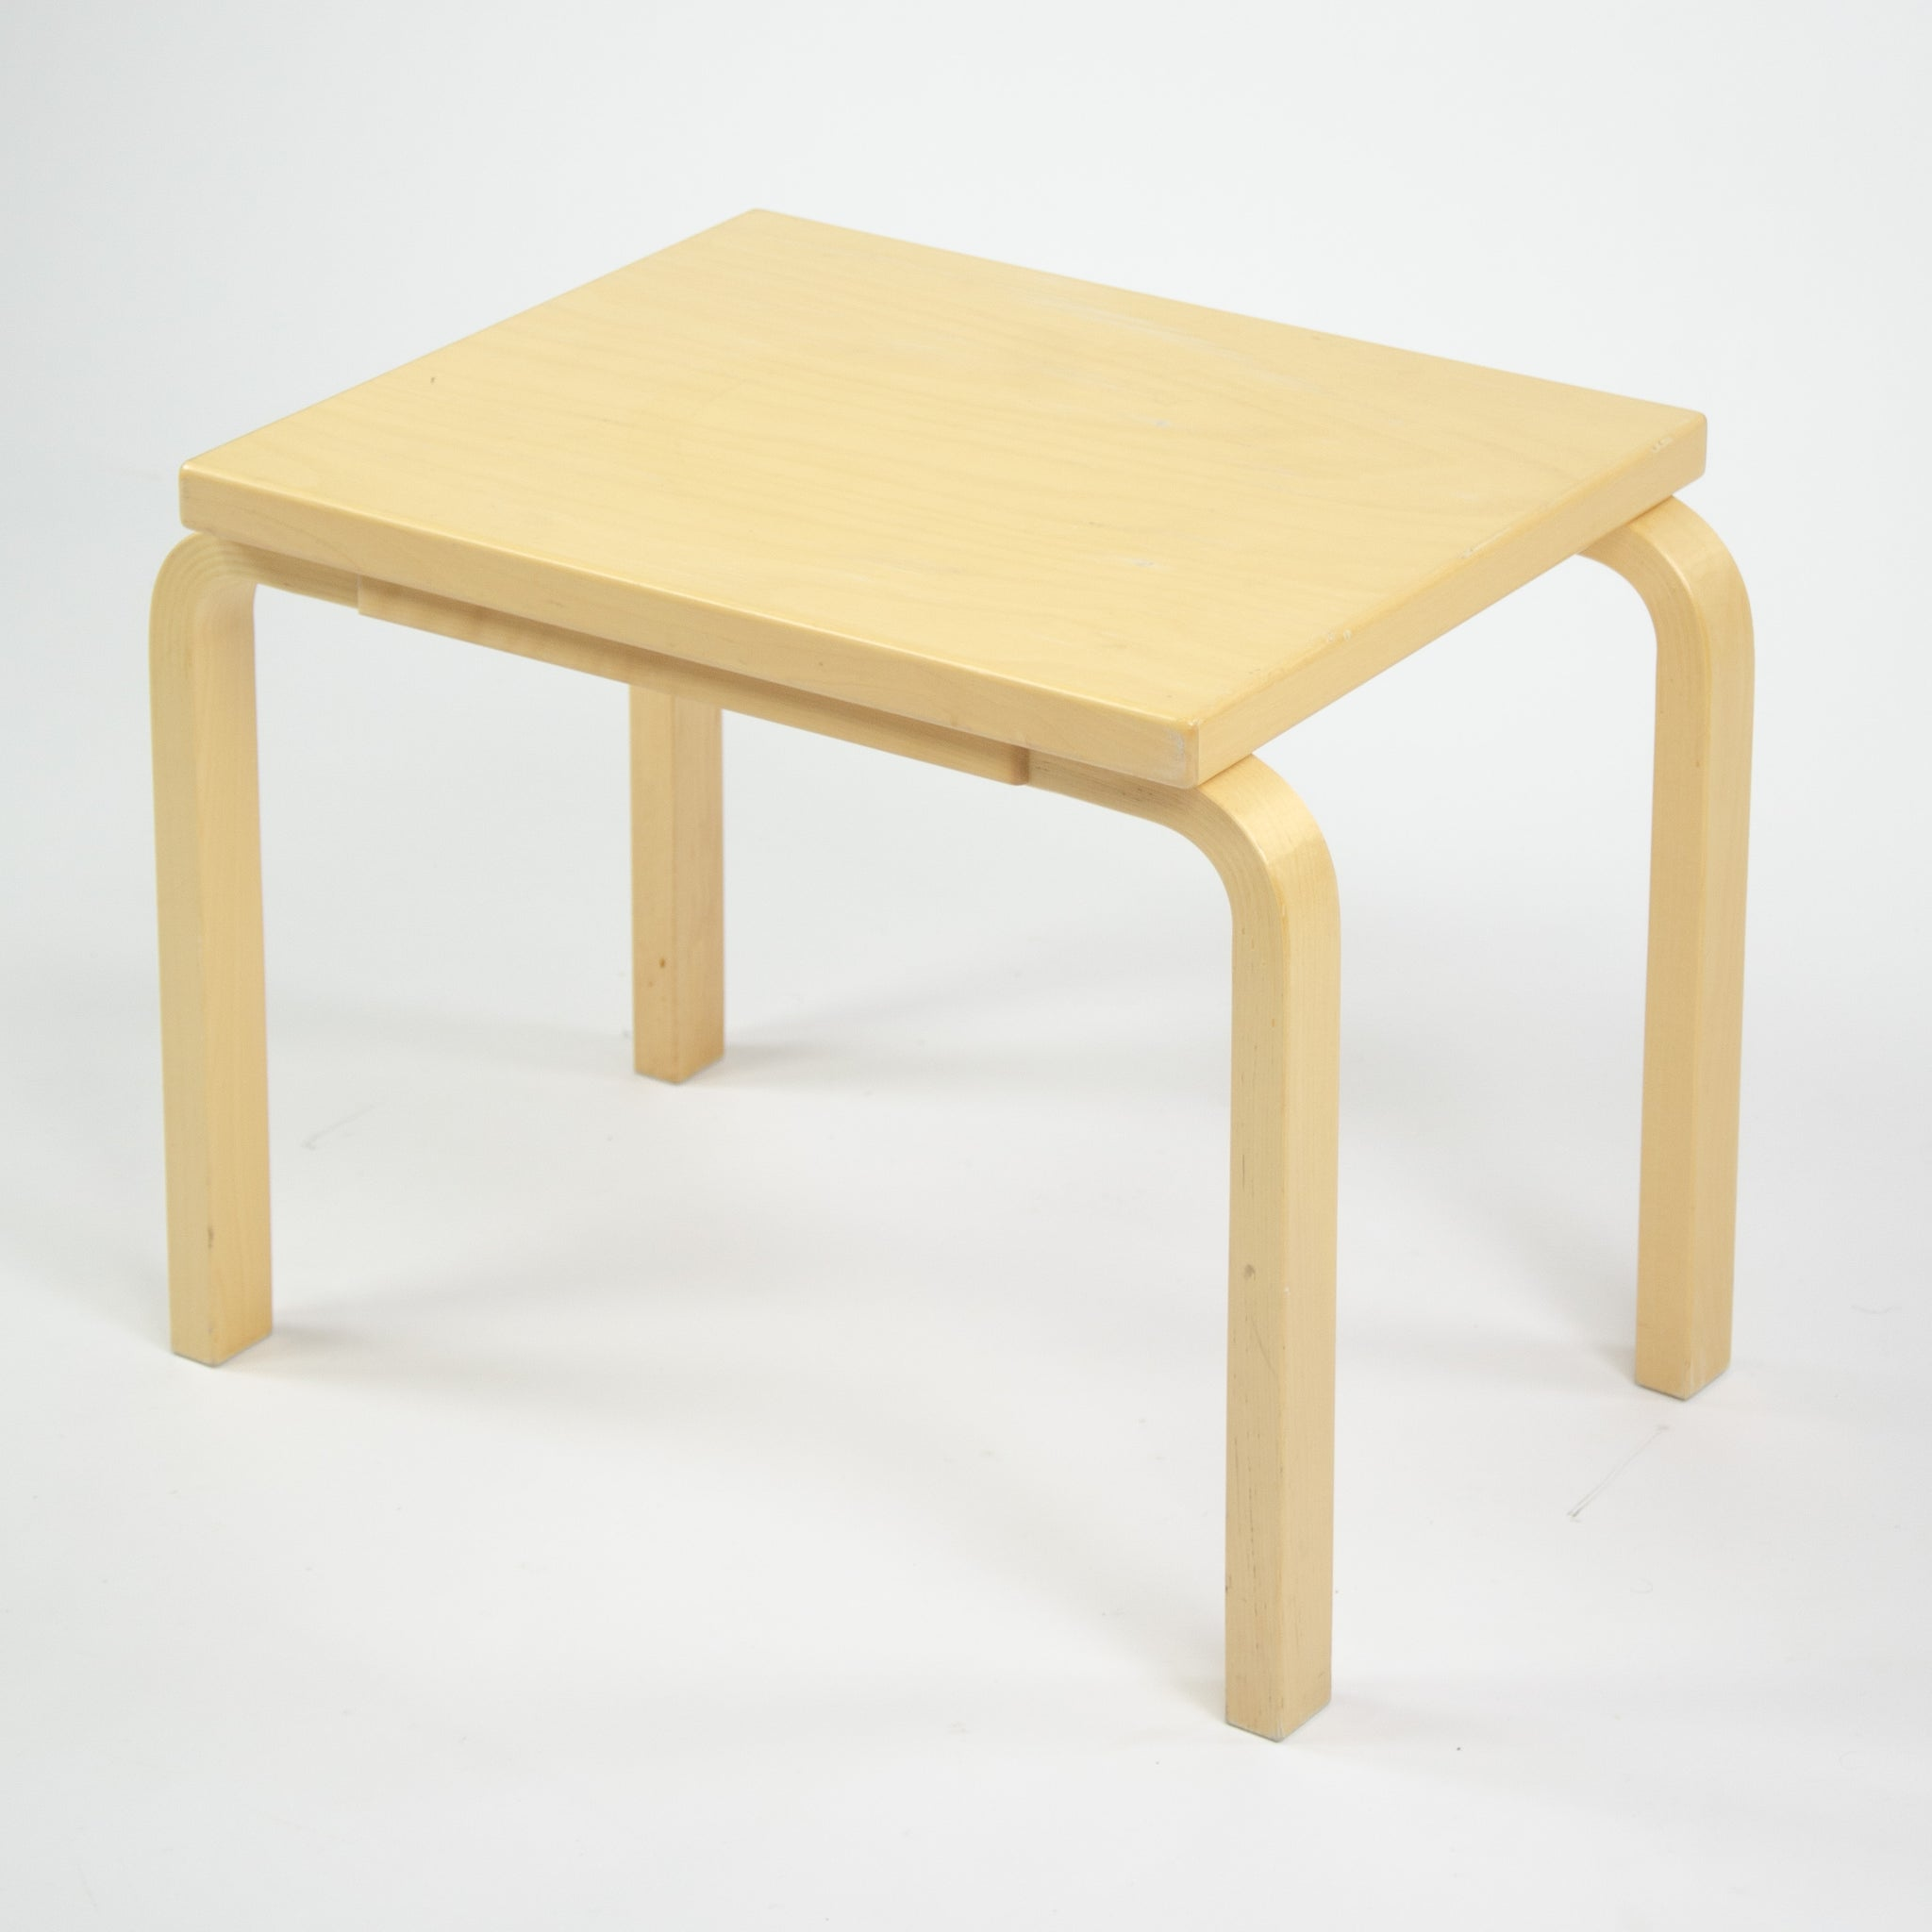 SOLD Alvar Aalto Nesting Table 88 by Artek in Birch